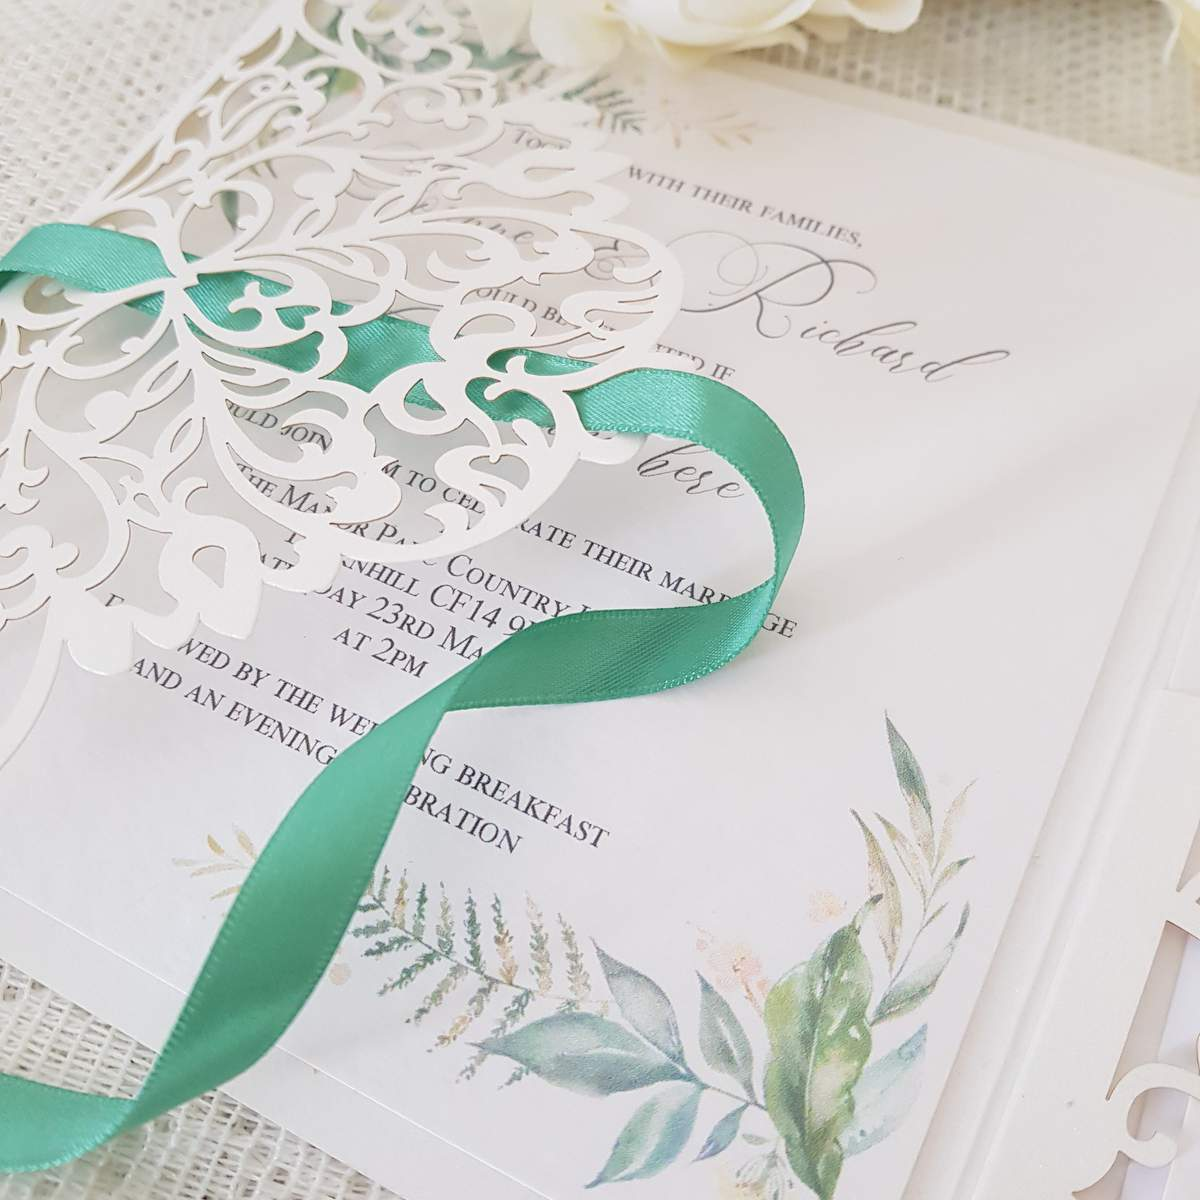 laser cut wedding invitation detail with sage green ribbon and a greenery leaf print design